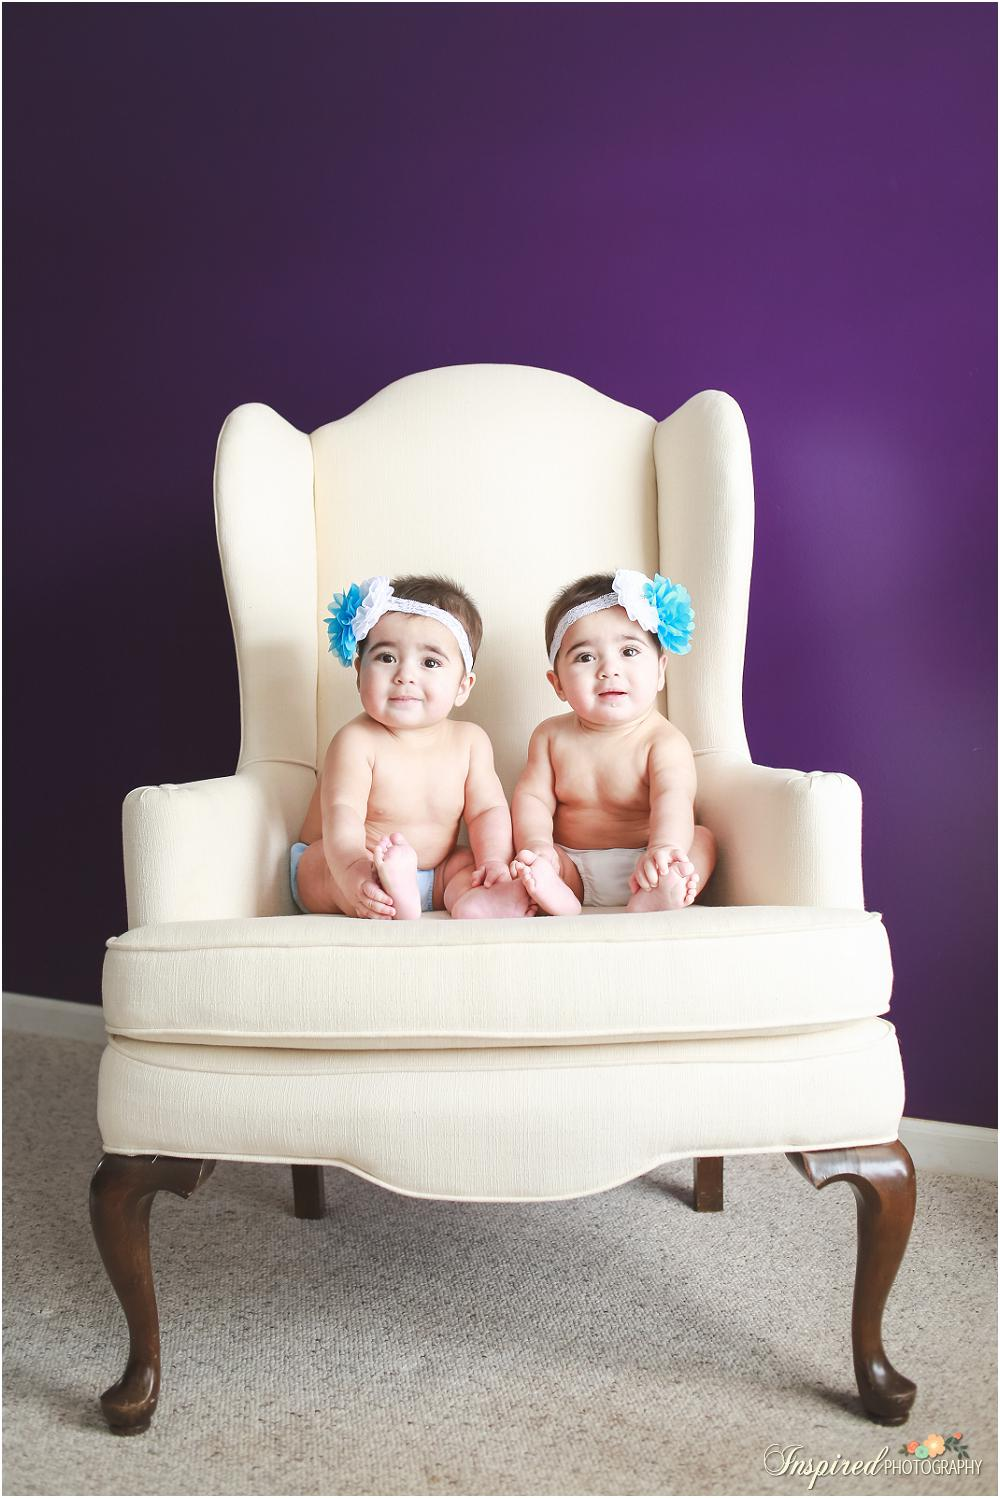 6 month twin photography // www.inspiredphotographystl.com